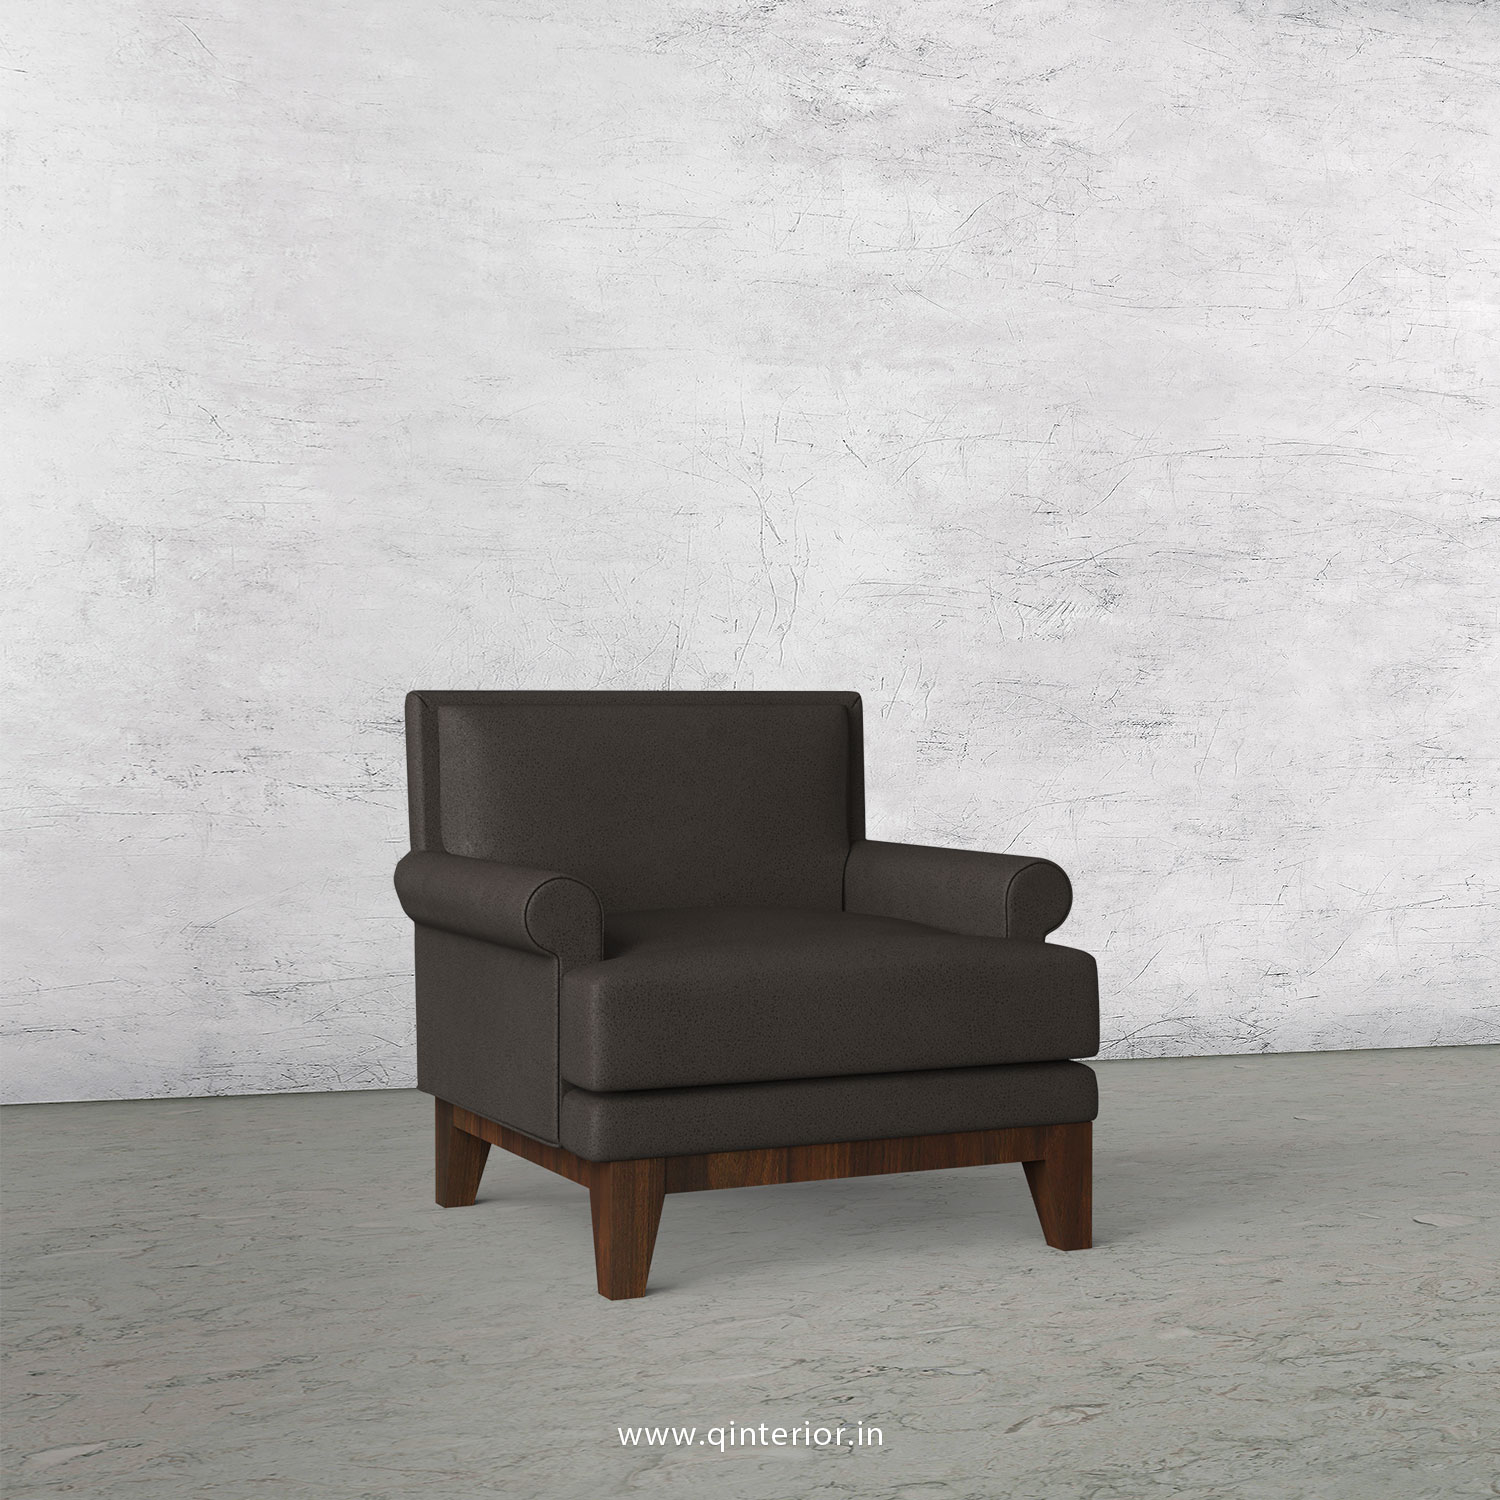 Aviana 1 Seater Sofa in Fab Leather Fabric - SFA001 FL15